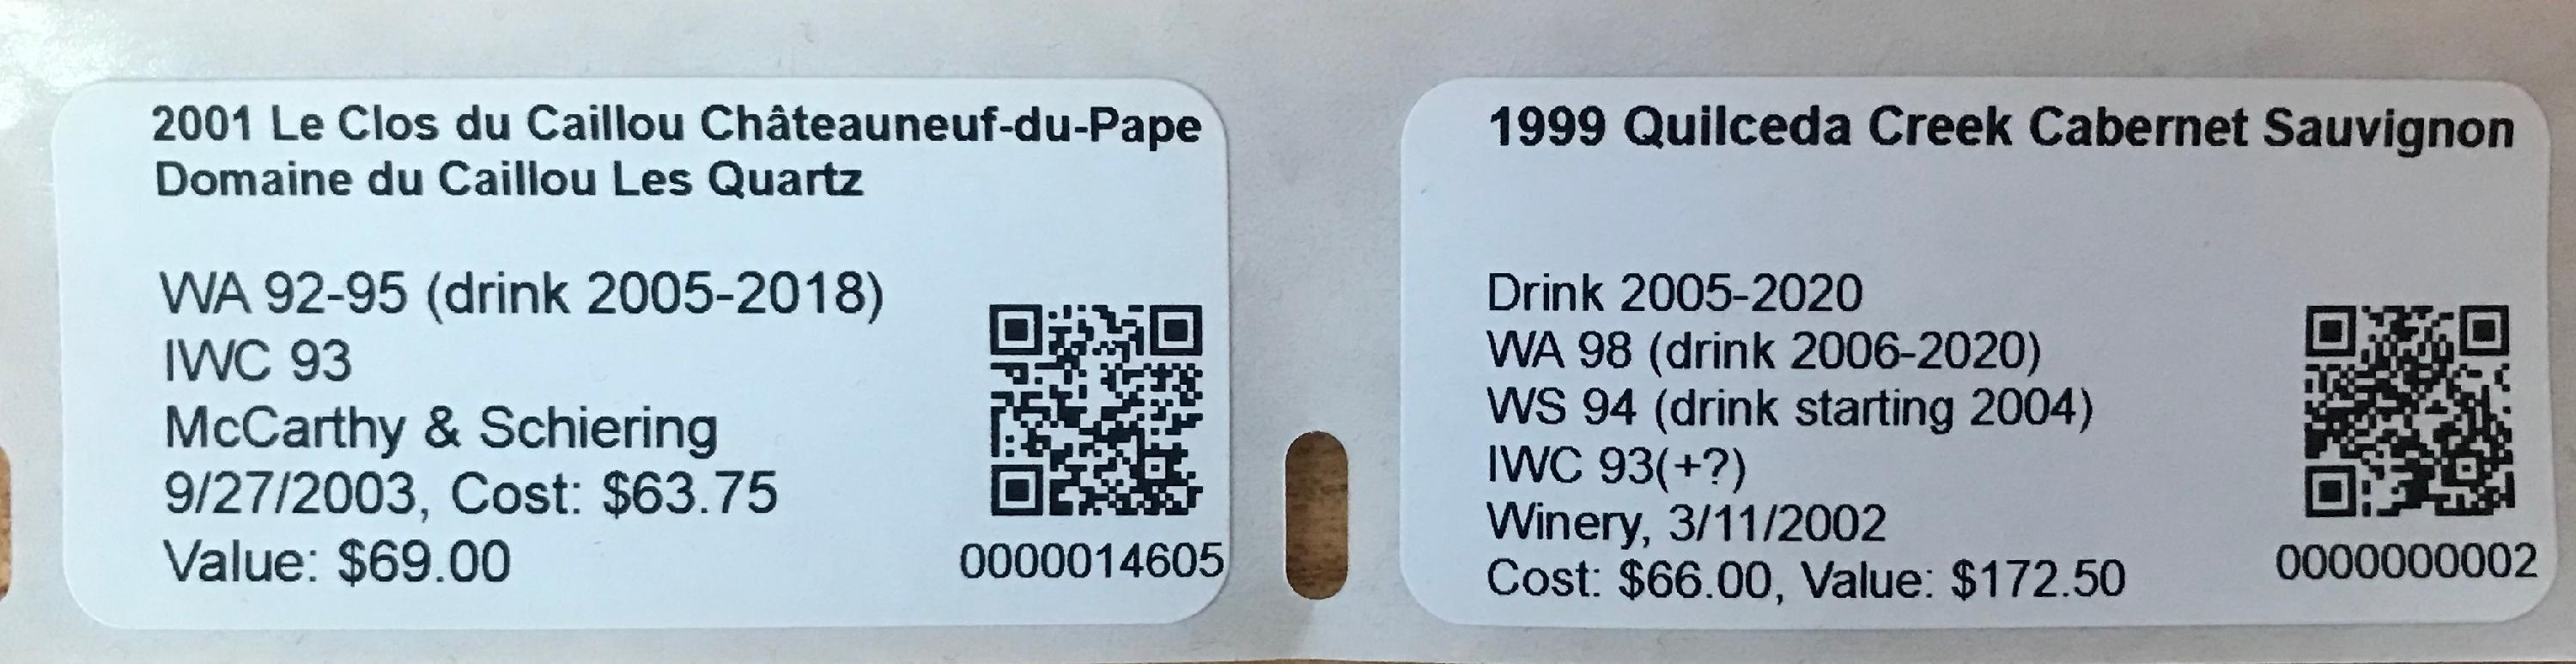 S&le DYMO 30336 per-bottle label with a QR Code. & Barcode Label Types - CellarTracker Support